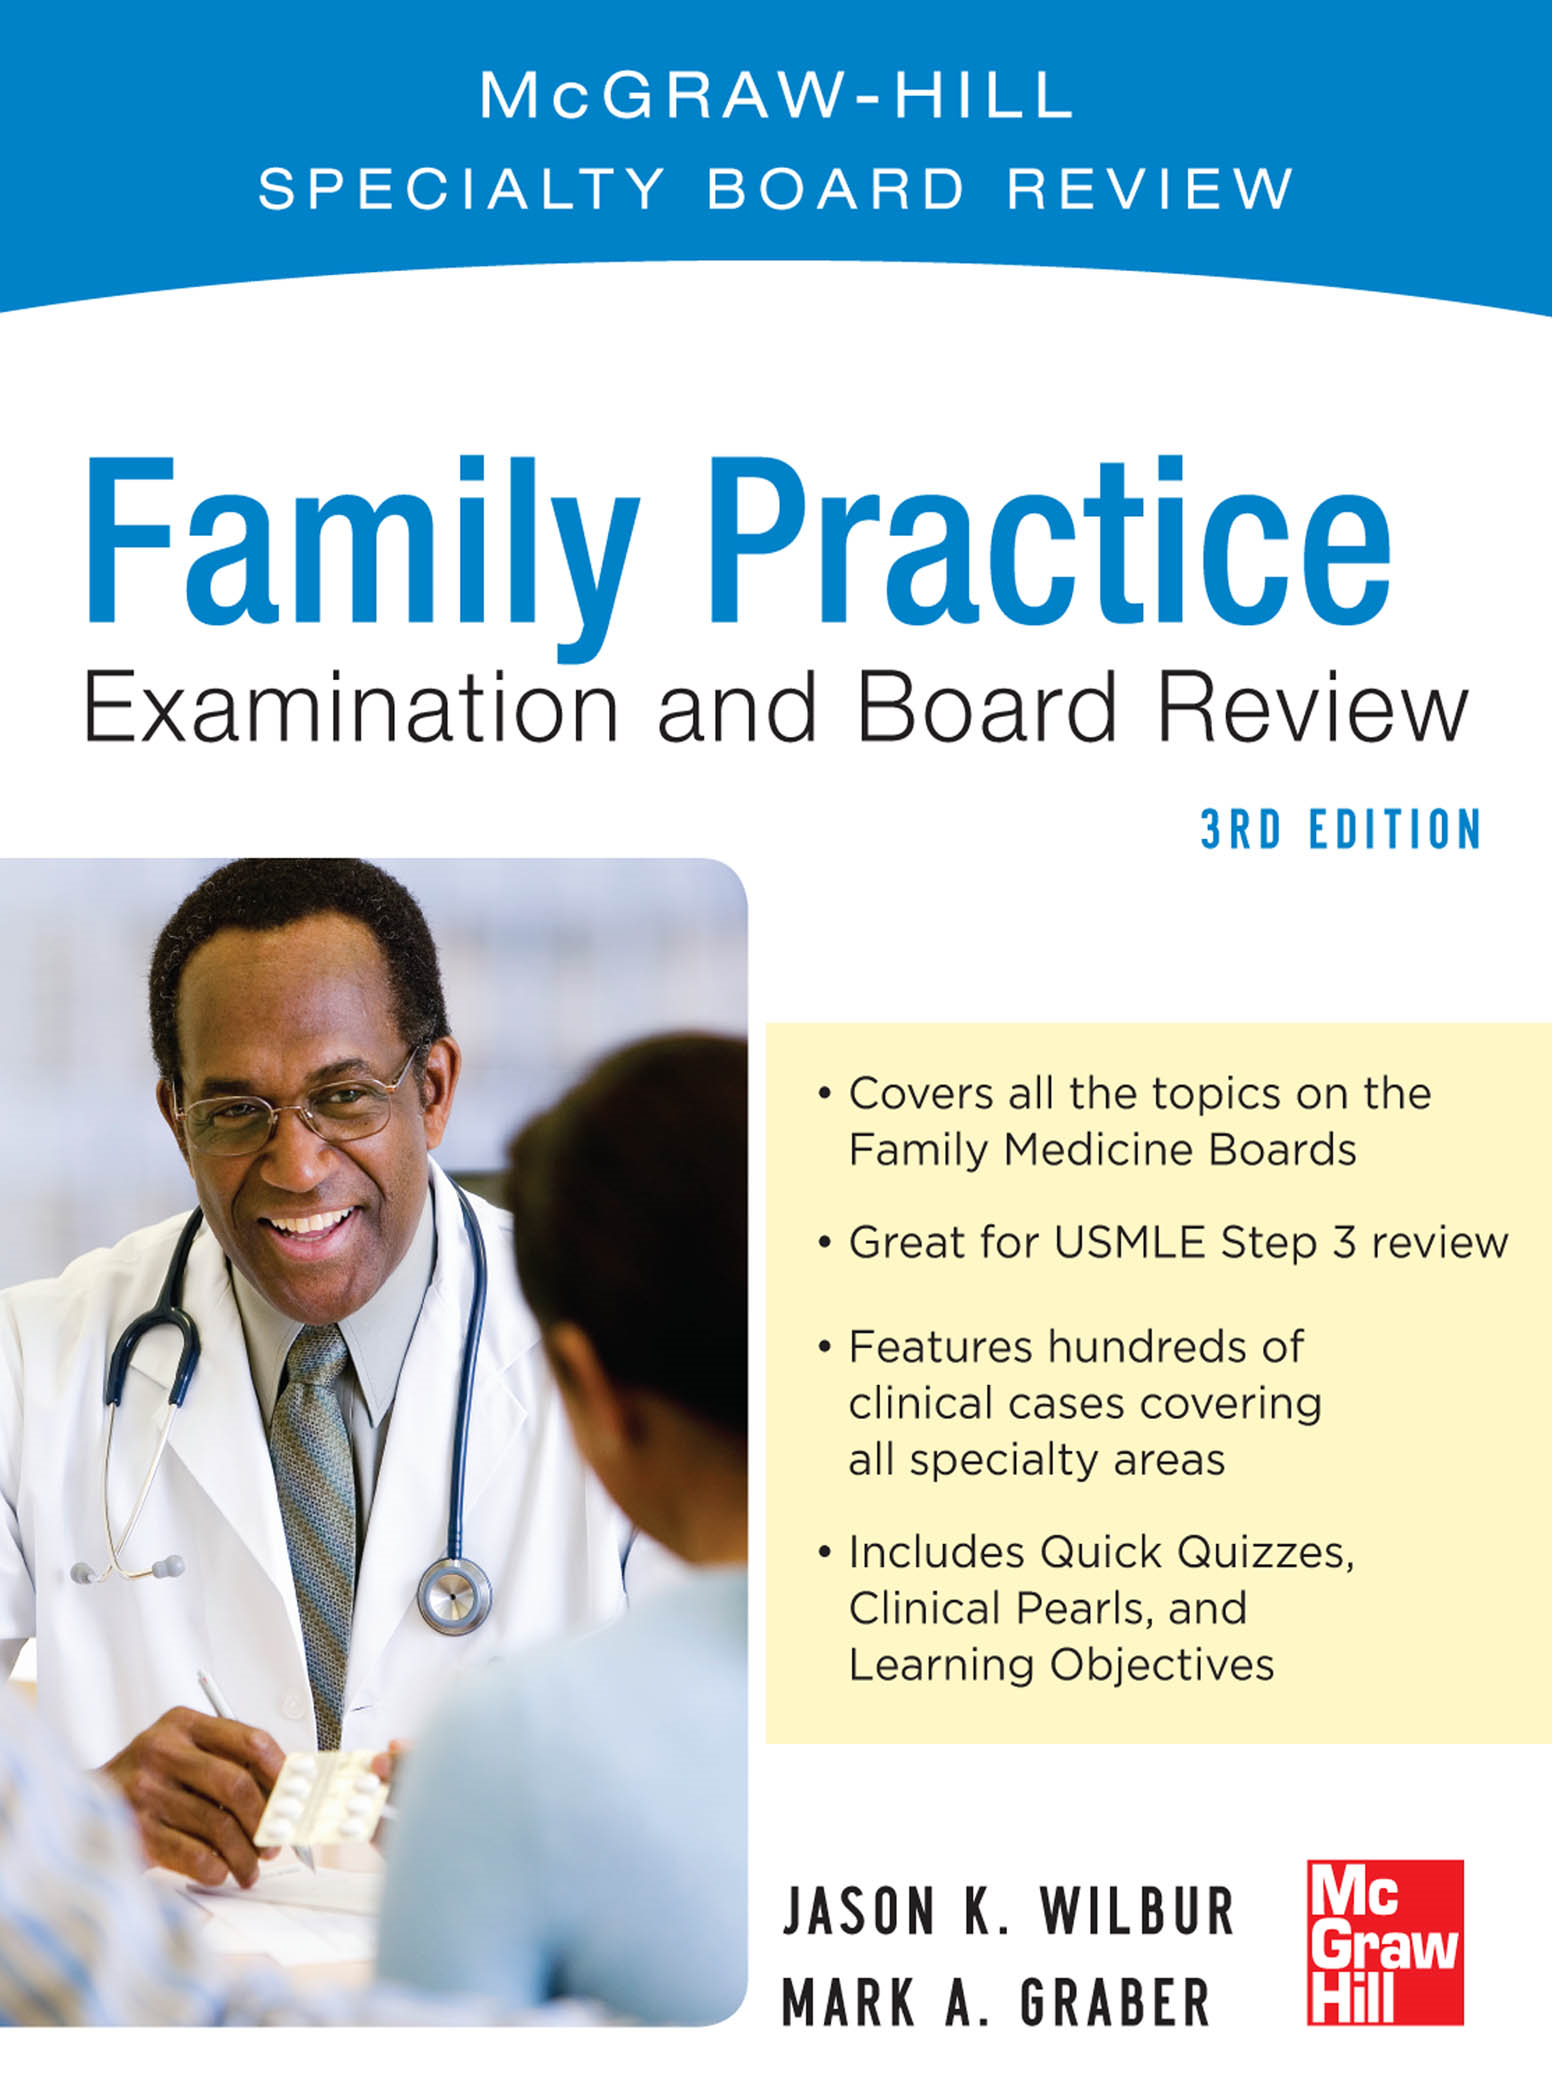 Family Practice Examination and Board Review, Third Edition By:  Jason Wilbur,Mark Graber